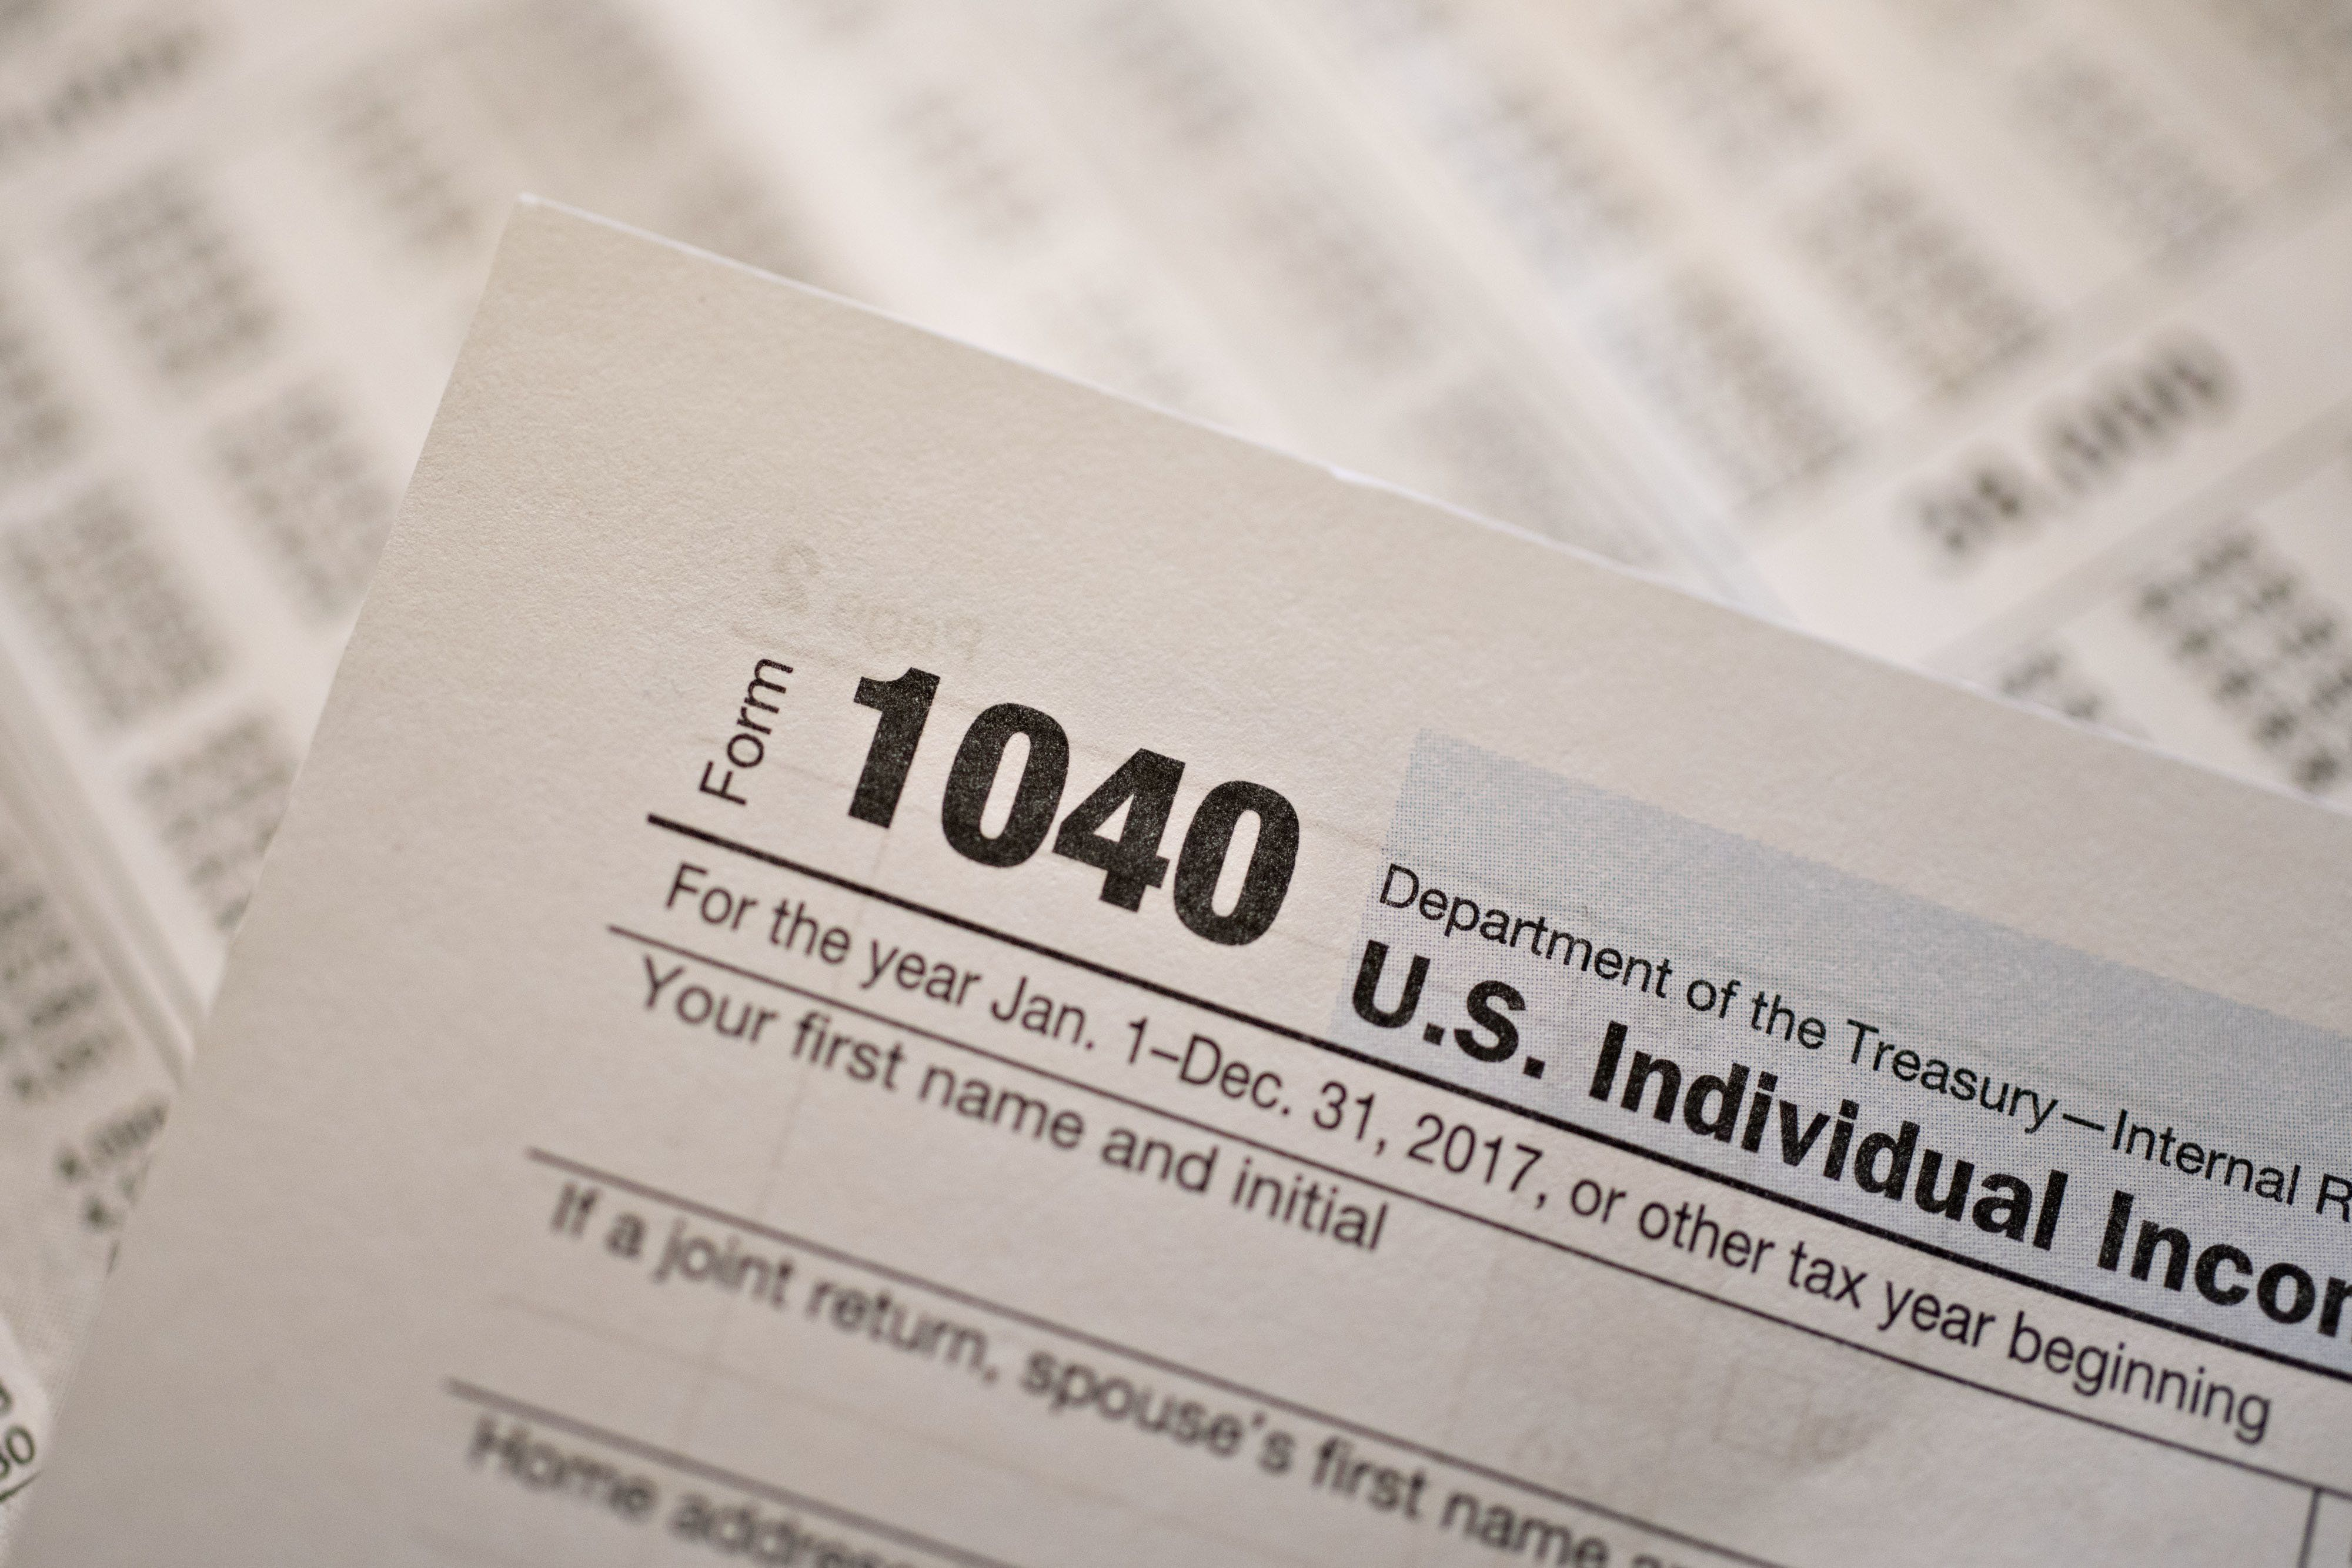 Americans have until midnight on April 18 to file their income tax returns this year.